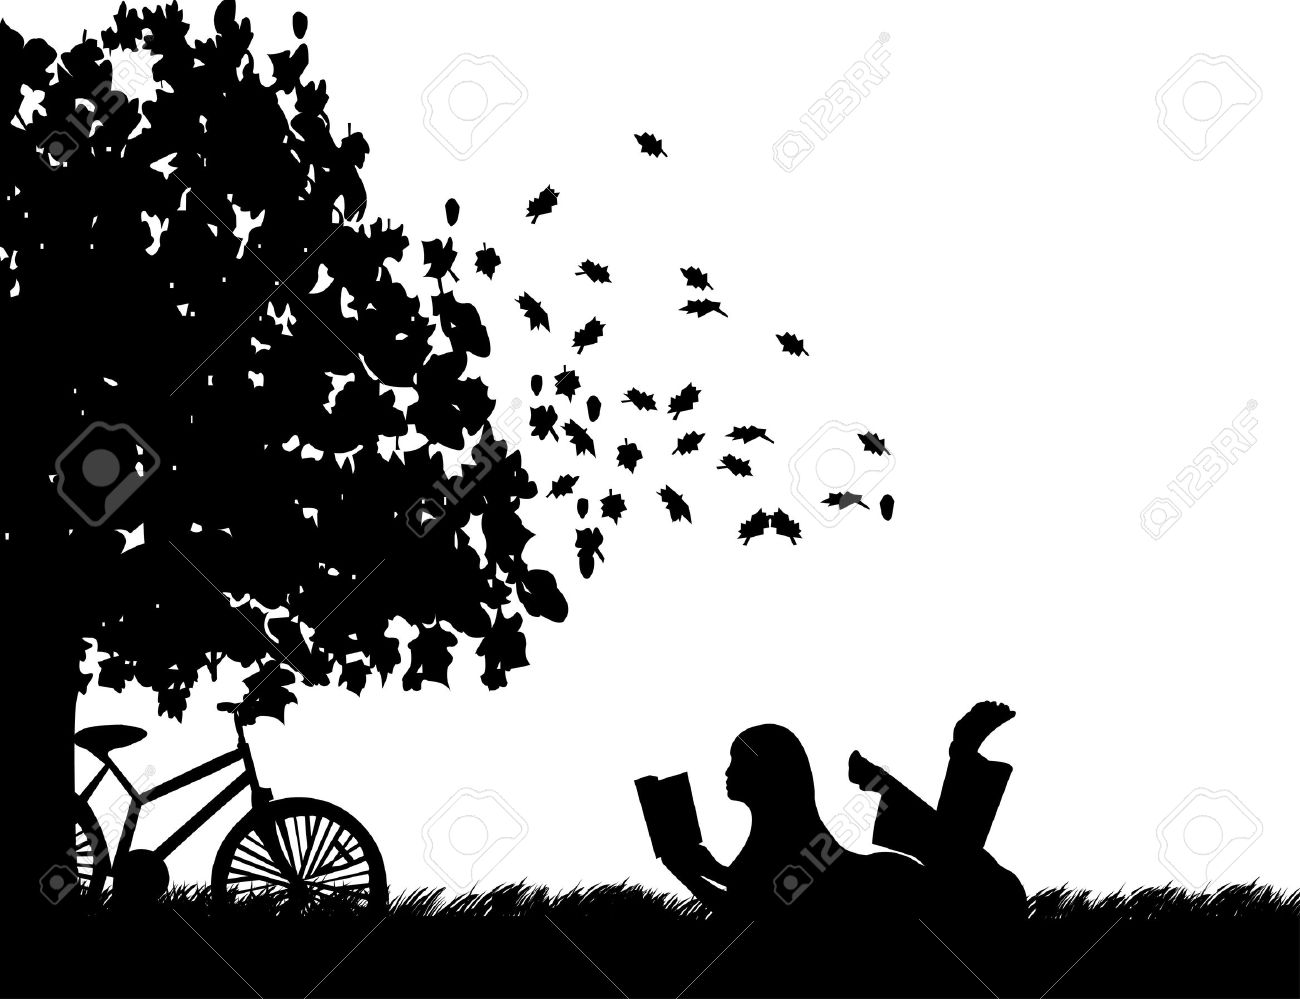 Silhouette of girl with bike reading a book under the tree in autumn or fall, one in the series of similar images Stock Vector - 15937344